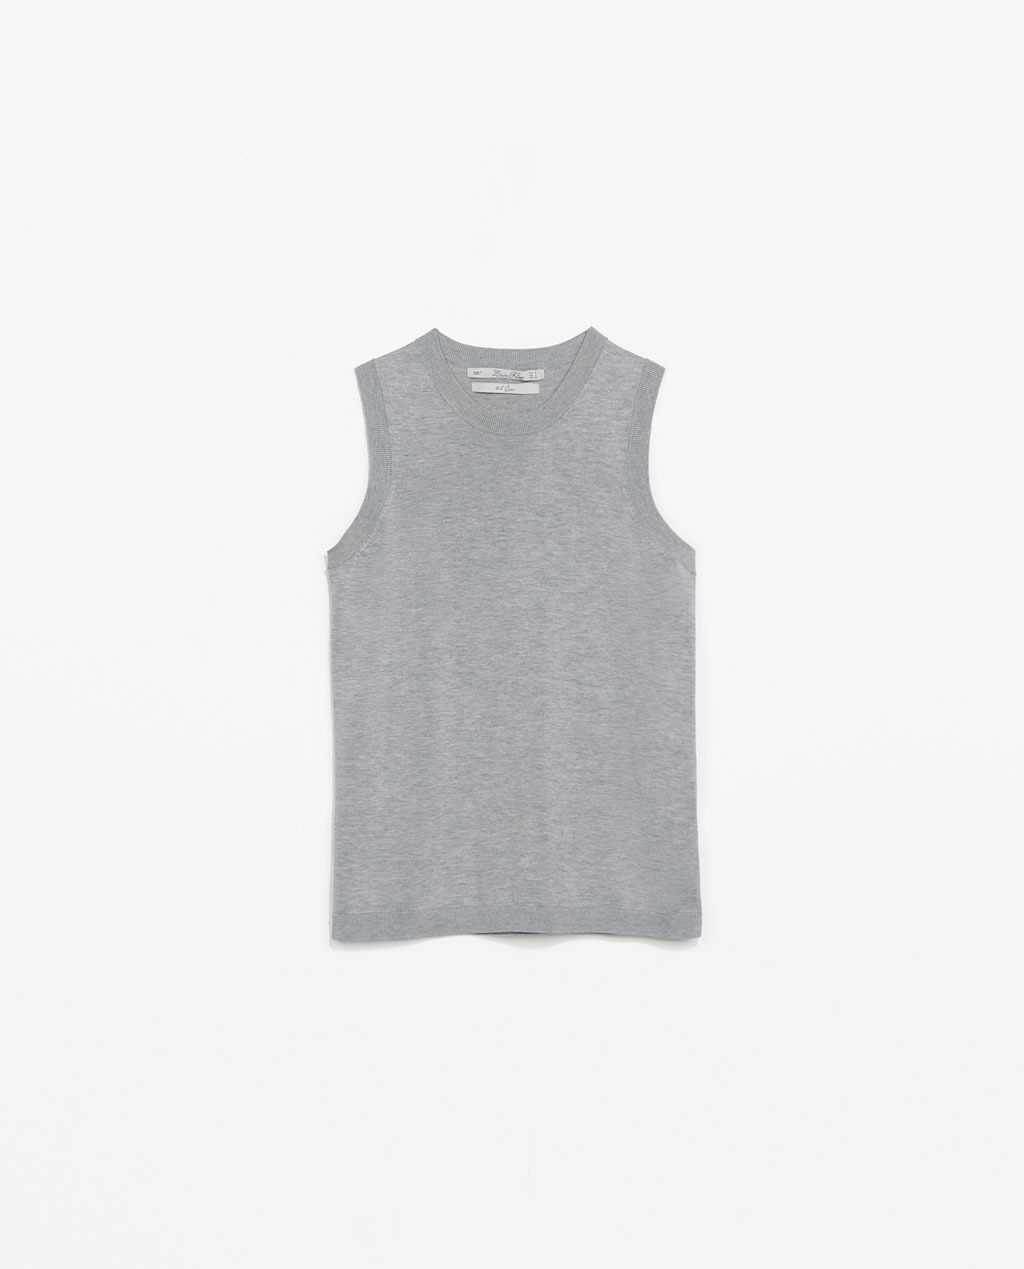 Silk Knit Tank Top - pattern: plain; sleeve style: sleeveless; style: vest top; predominant colour: mid grey; occasions: casual; length: standard; fibres: silk - mix; fit: body skimming; neckline: crew; sleeve length: sleeveless; texture group: knits/crochet; pattern type: knitted - fine stitch; season: s/s 2014